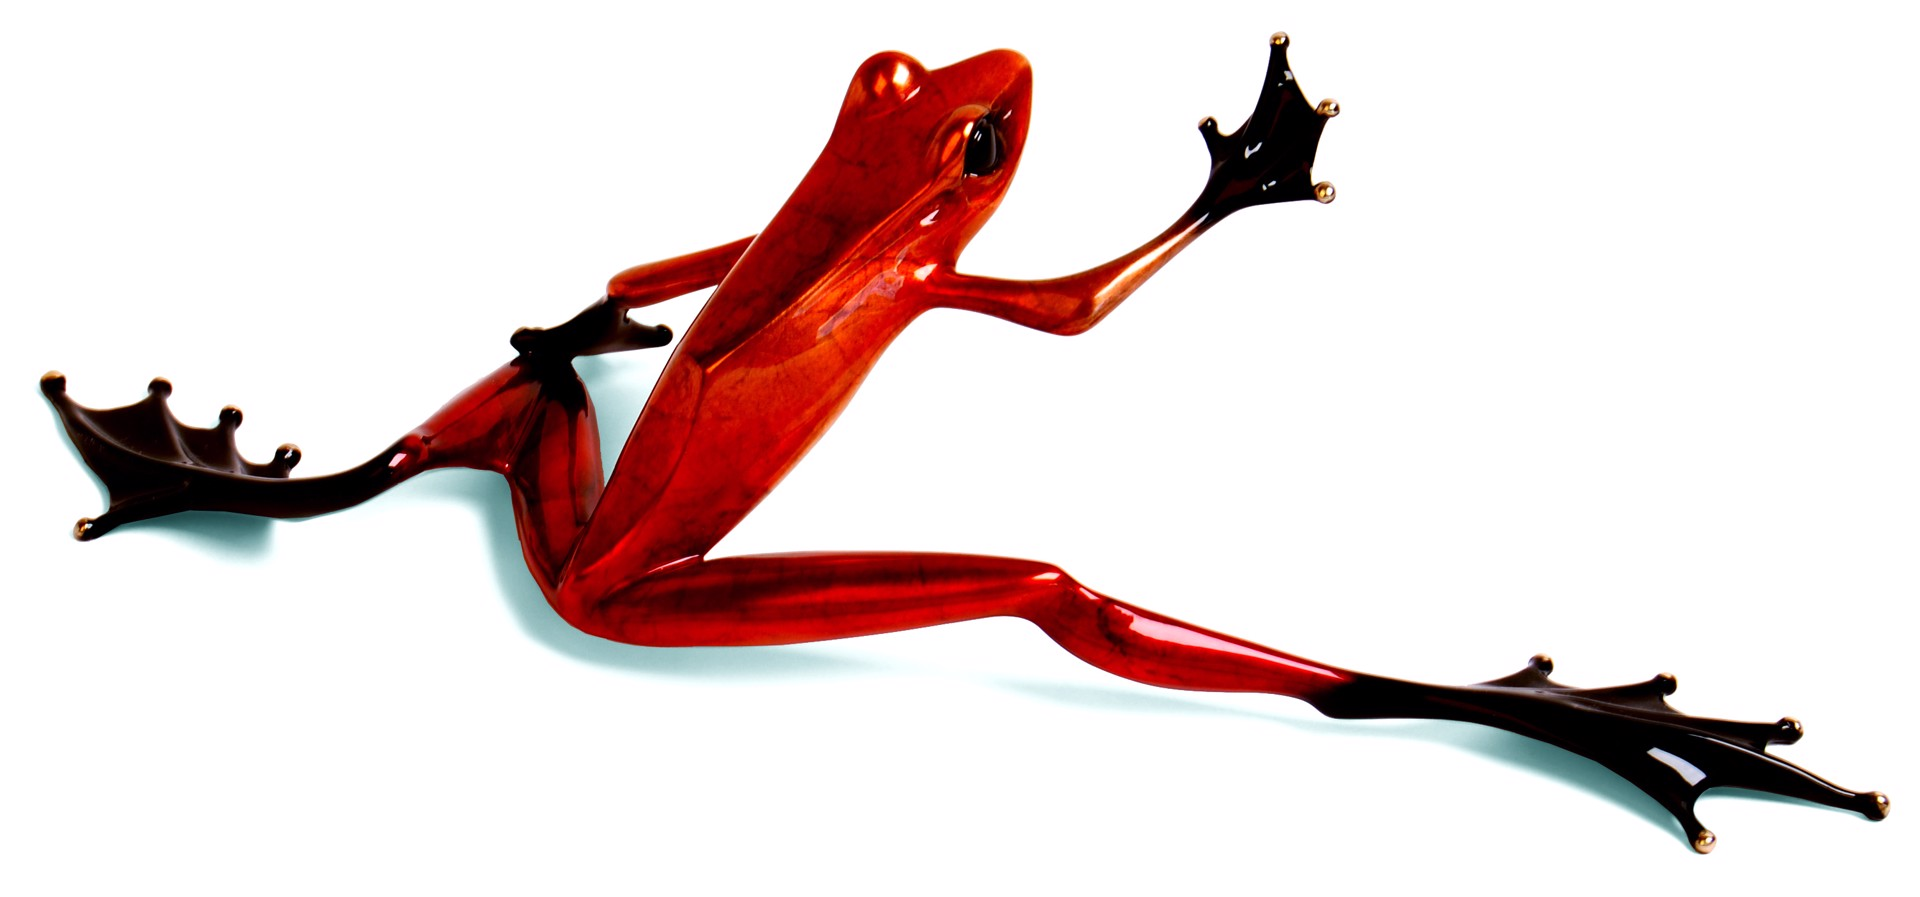 Steppin' Out II - Platinum Frog - Red Nitrate BF78S3 by Tim Cotterill